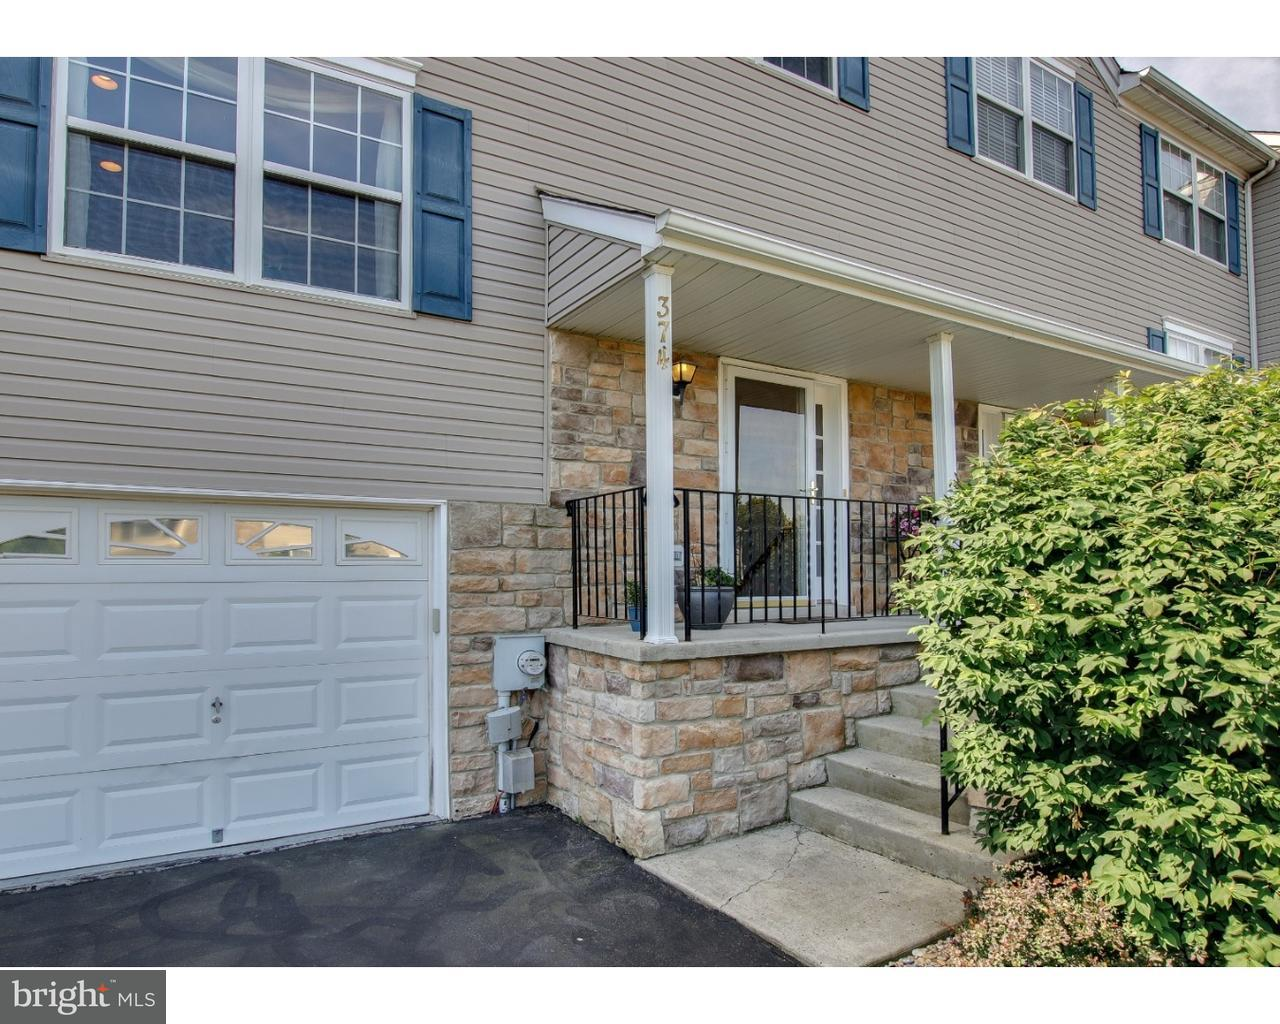 374 CEDAR WAXWING DR, WARRINGTON - Listed at $320,000,